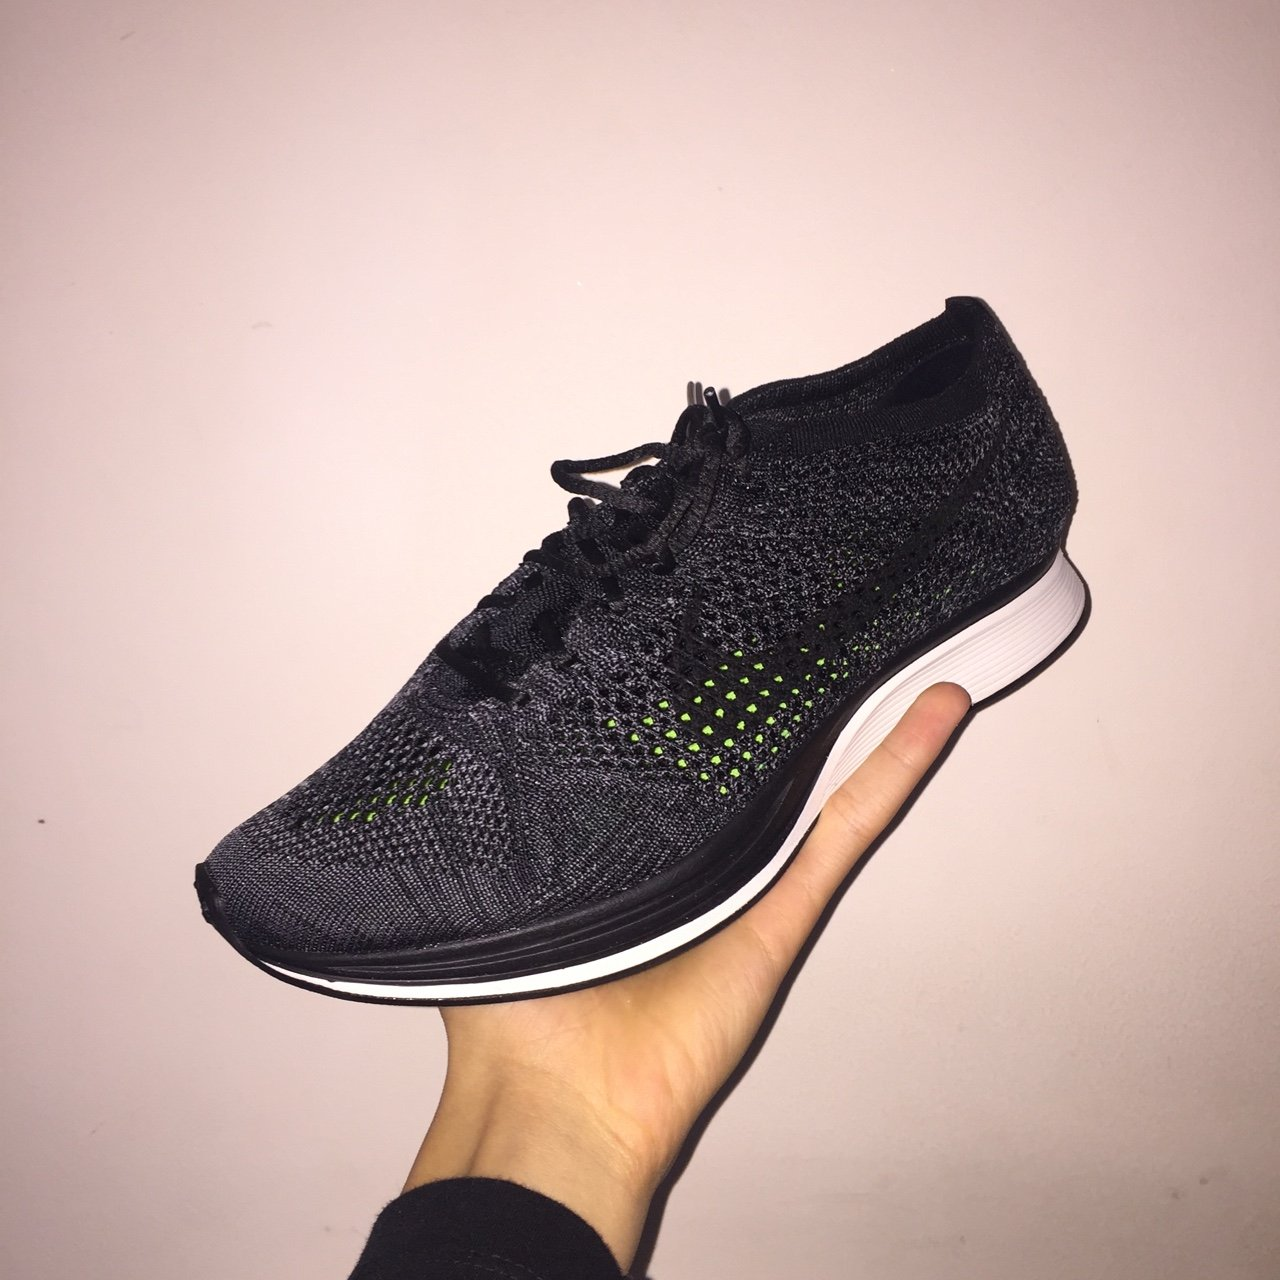 release date 96573 3d33b Nike Lab Flyknit Racer Blackout, Deadstock with receipt. For - Depop